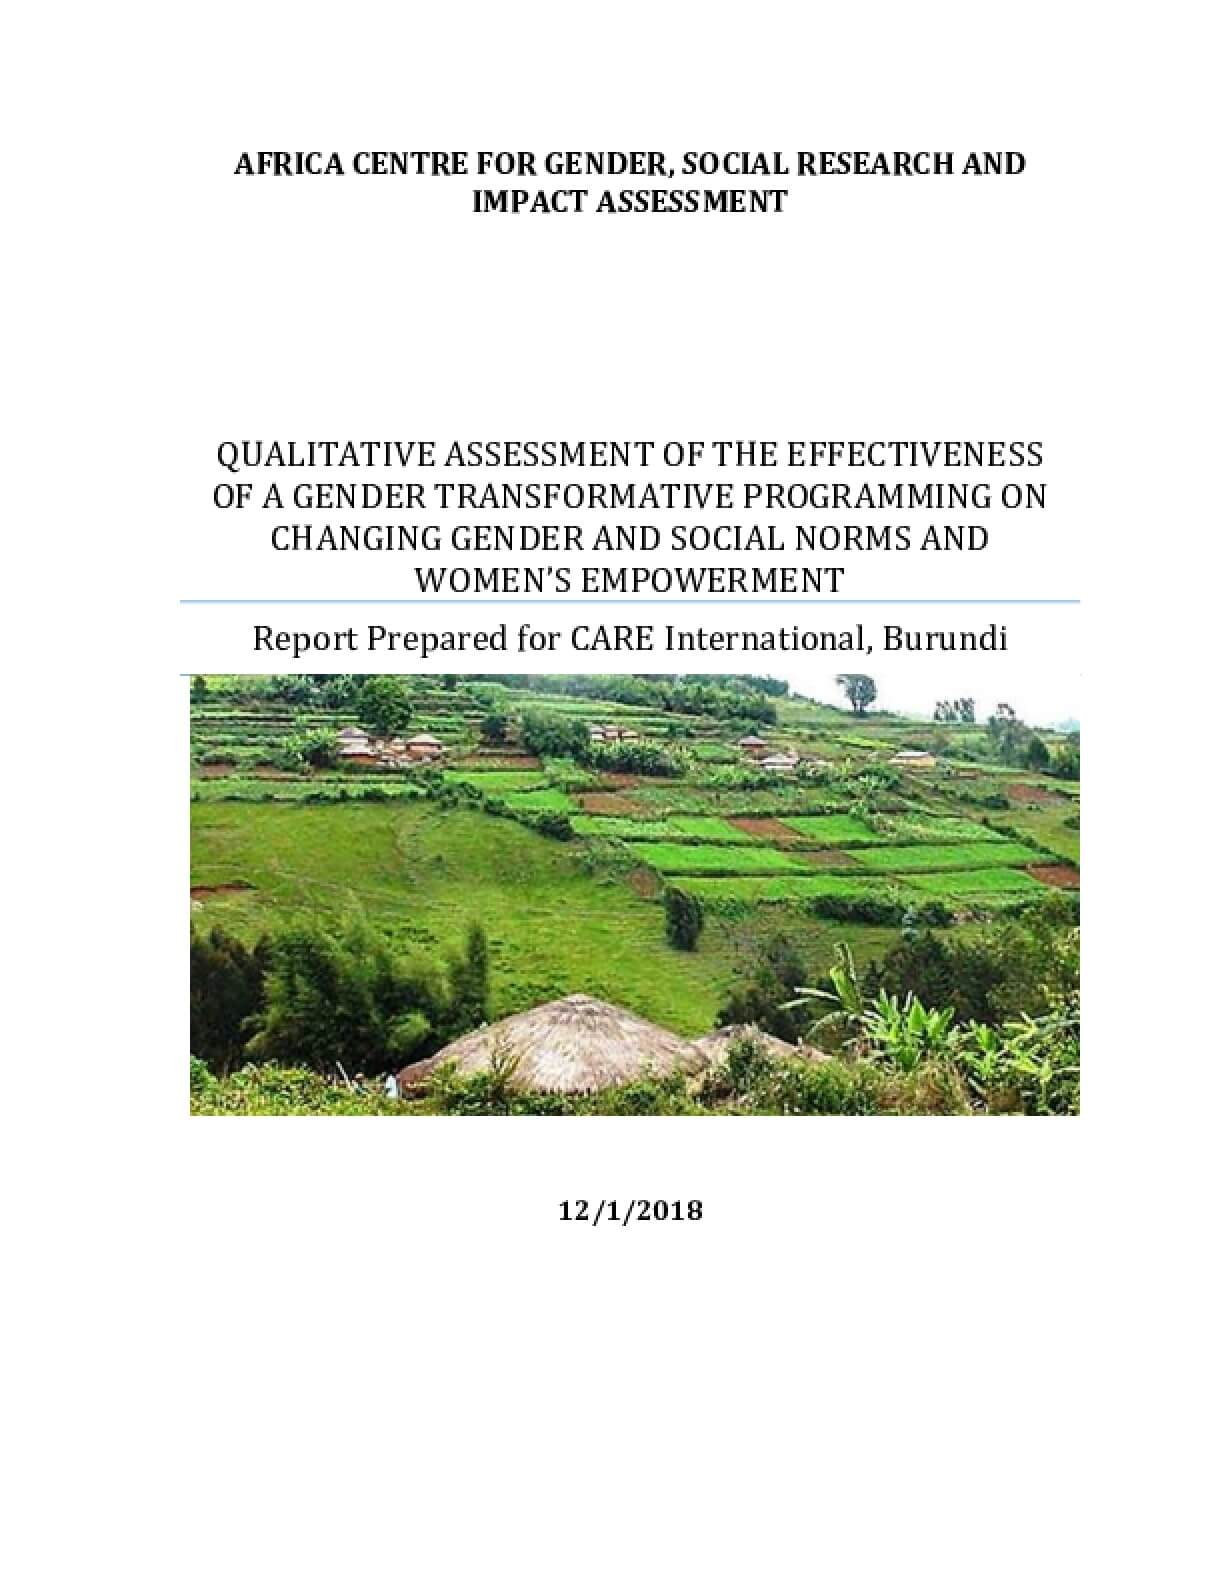 Qualitative Assessment of the Effectiveness of a Gender Transformative Programming on Changing Gender and Social Norms and Women's Empowerment